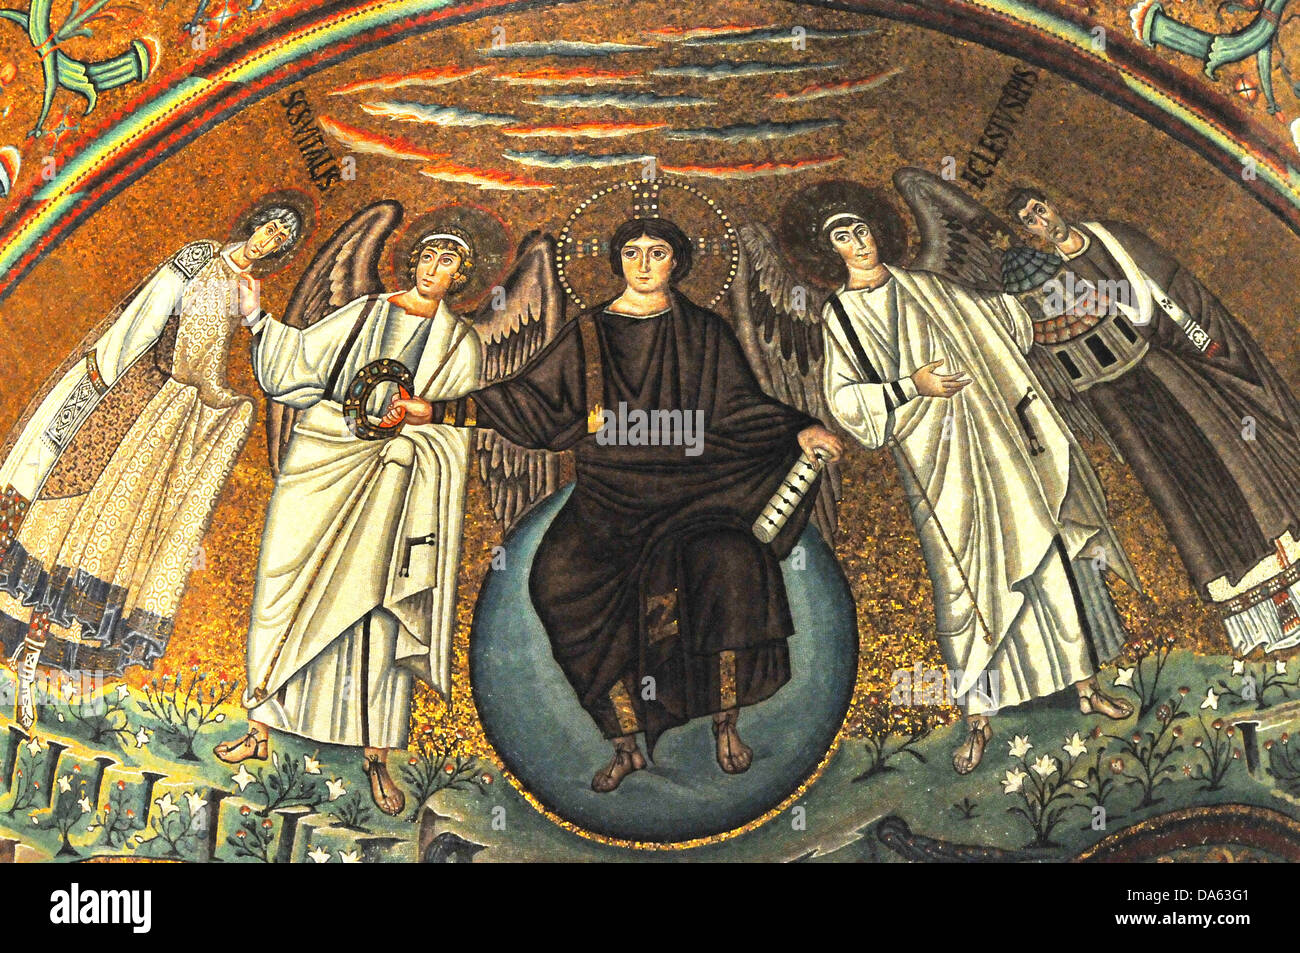 Mosaic Masterpiece on the apse of the UNESCO listed basilica of Sta vitalis, Ravenna, Italy. Showing Christ youthful - Stock Image